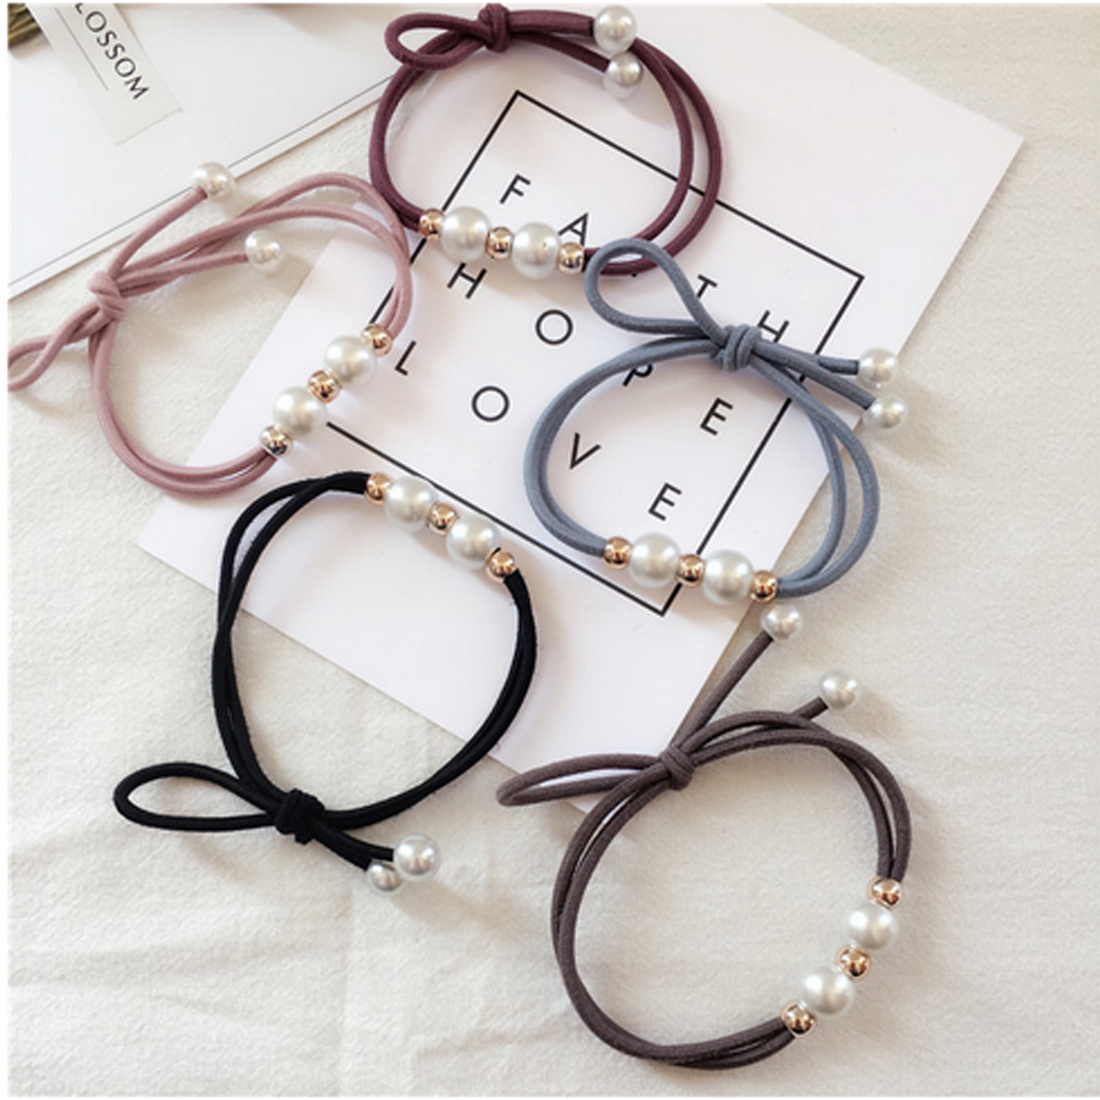 5PCS/LOT Women Girls Luxury Pearls Bowknot Elastic Hair Bands Headband Tie Gum Ponytail Holder Hair Ropes Hair Accessories